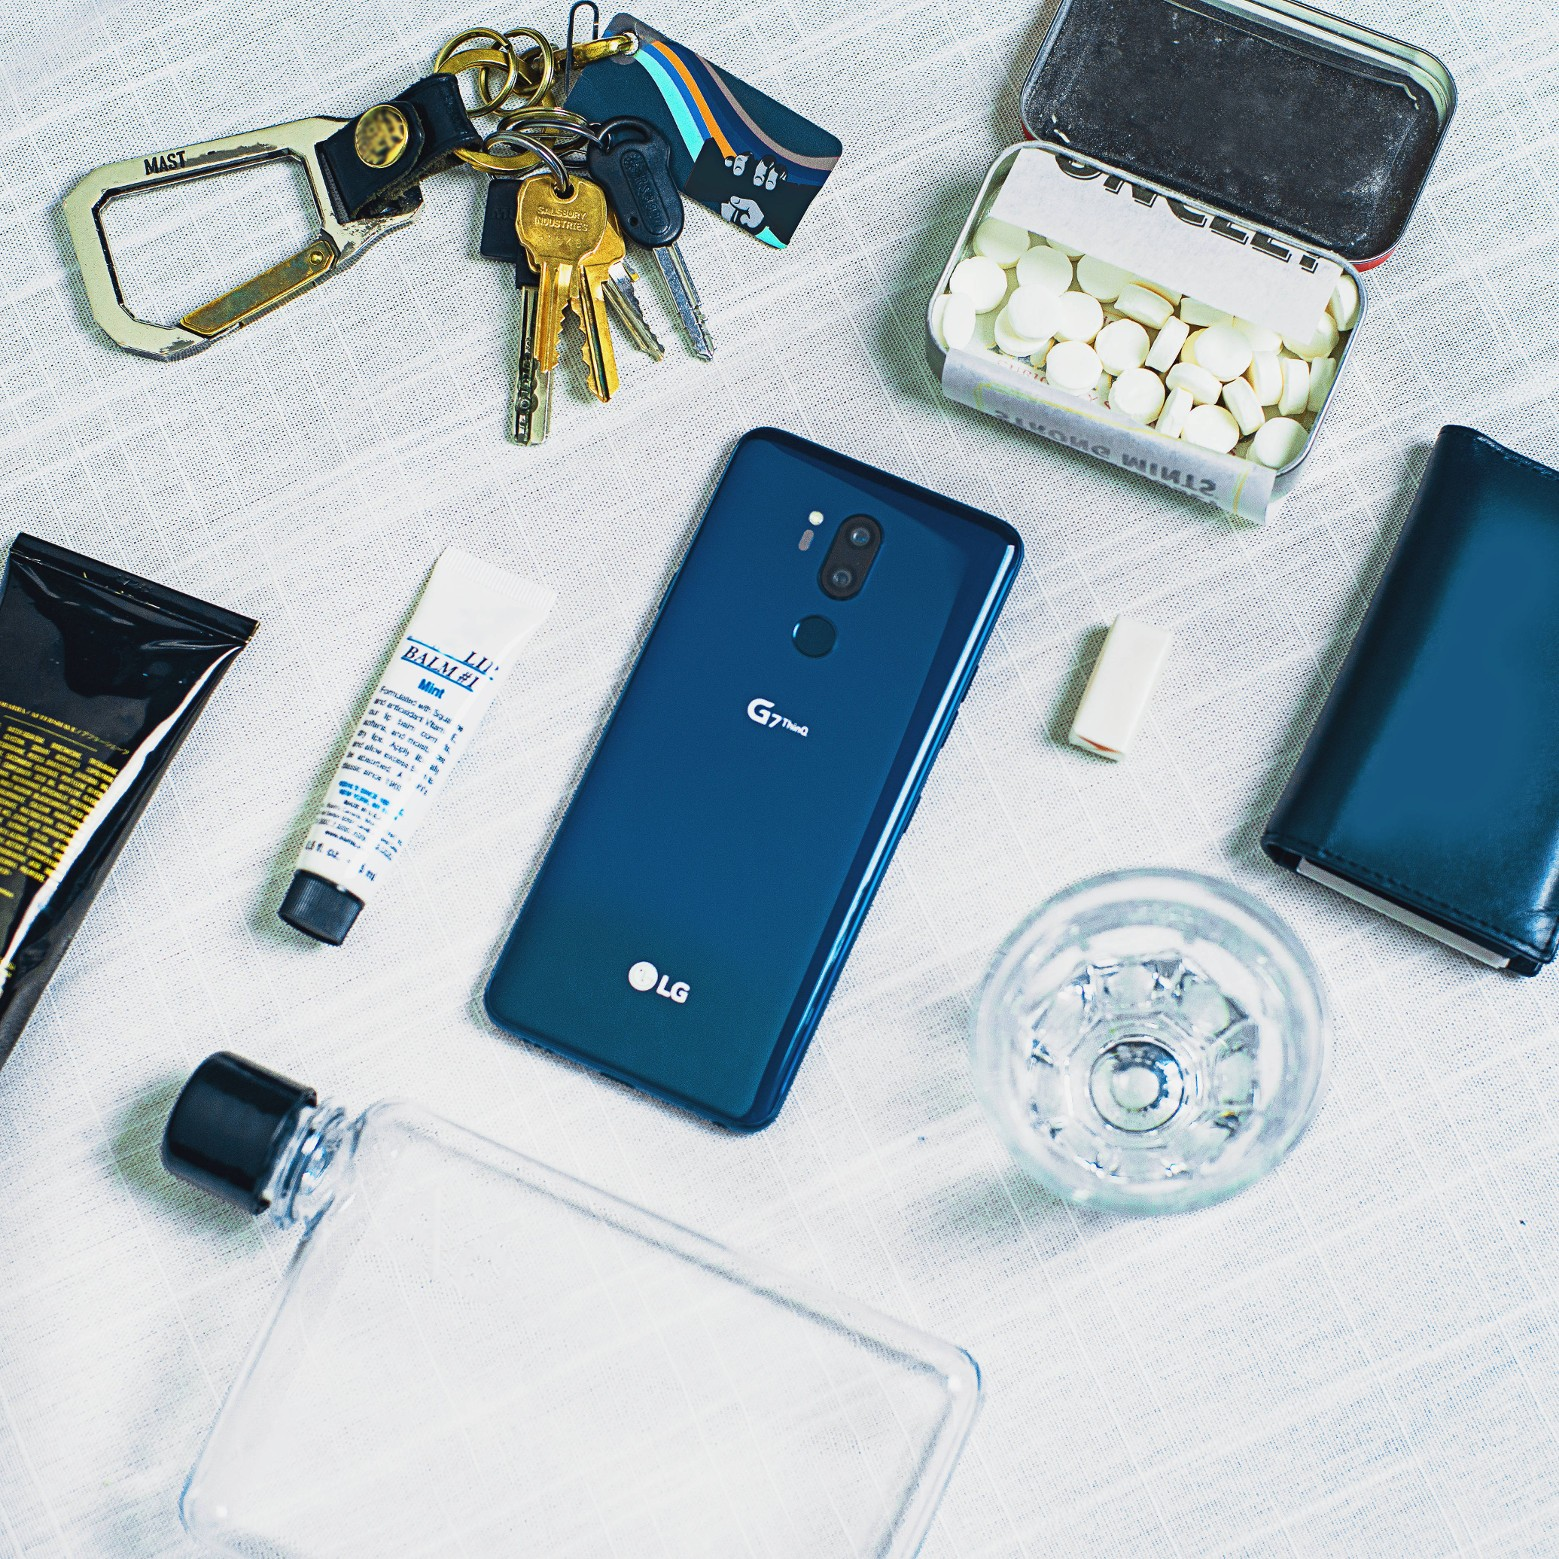 The LG G7 ThinQ in New Moroccan Blue face down on a table, next to other lifestyle items, such as keys, a water bottle, mints, etc.